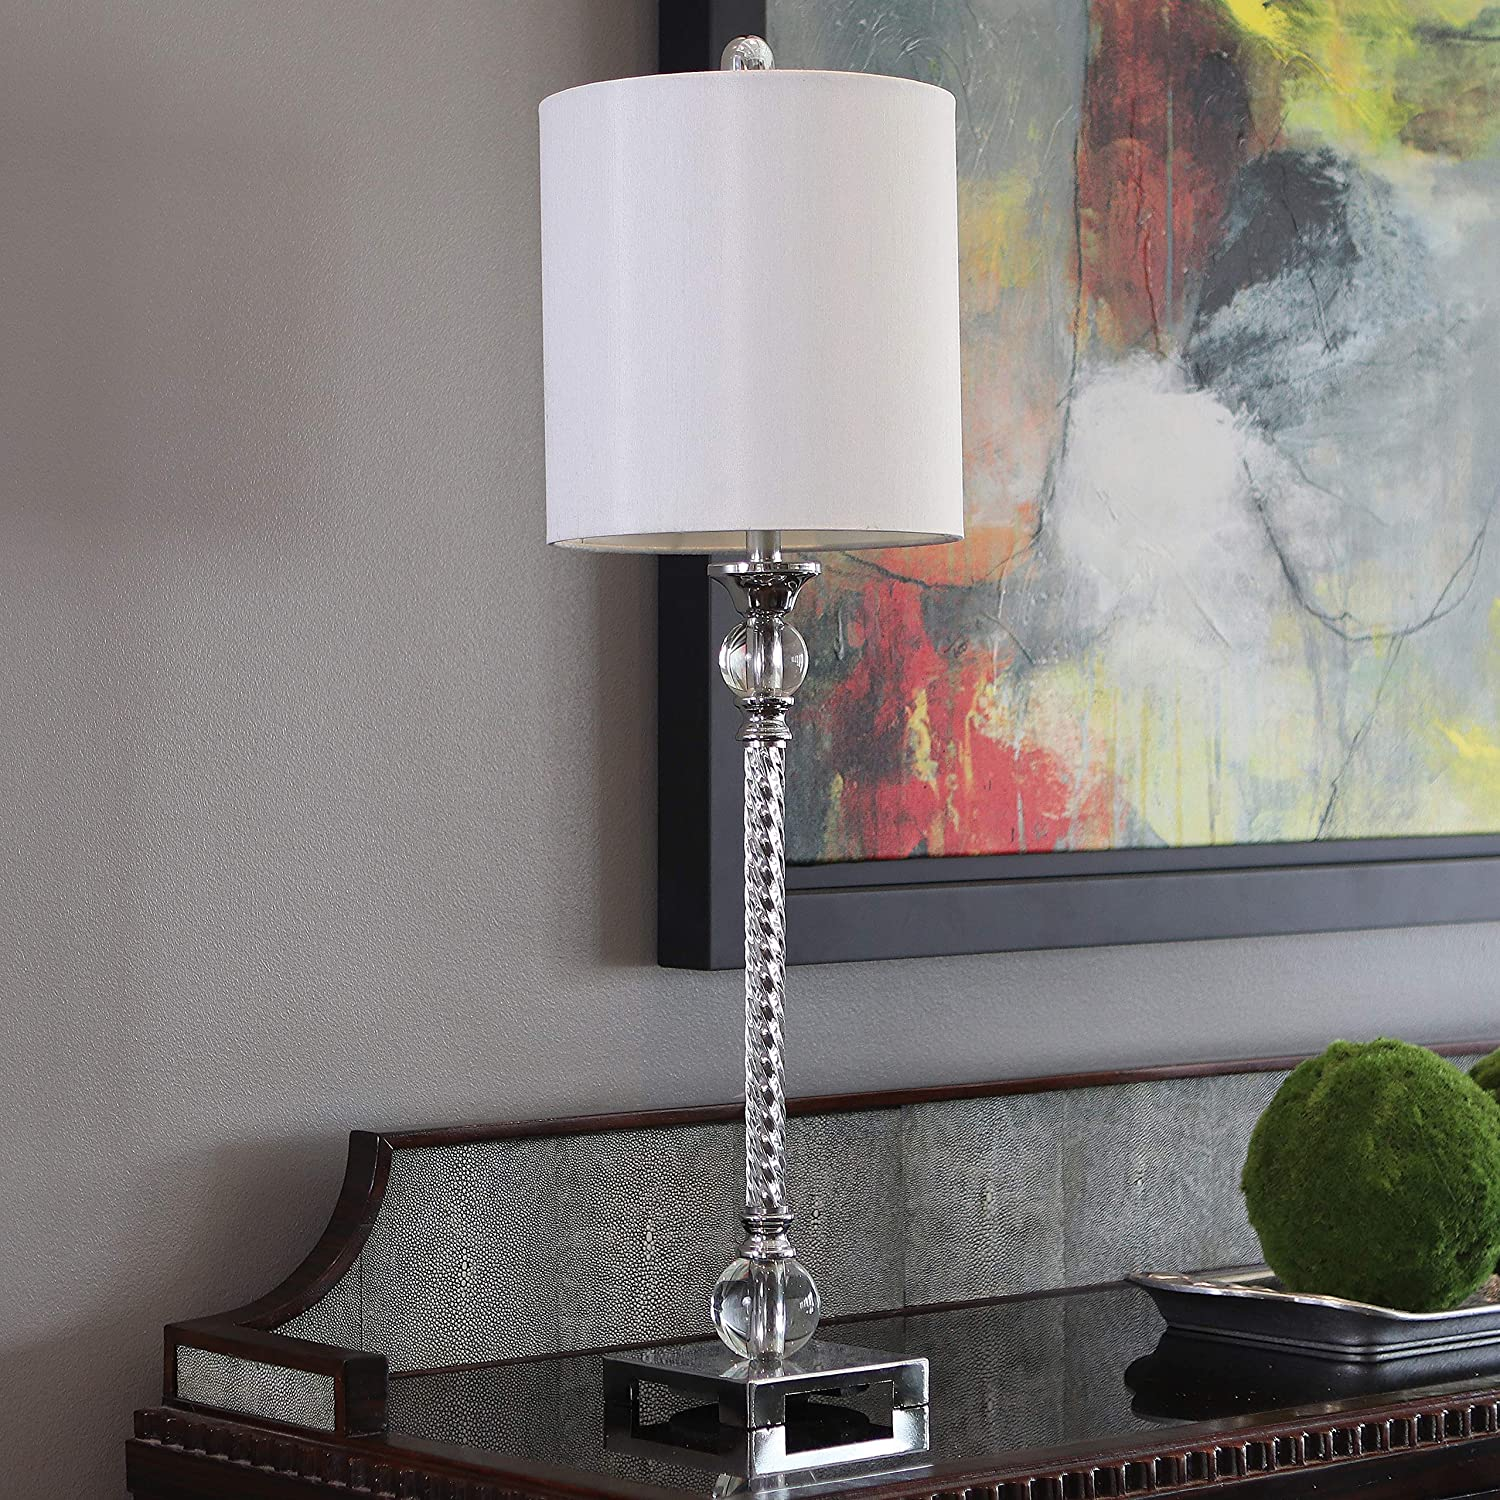 Décor Therapy TL17313 Table Lamp, Chrome and Clear Acrylic